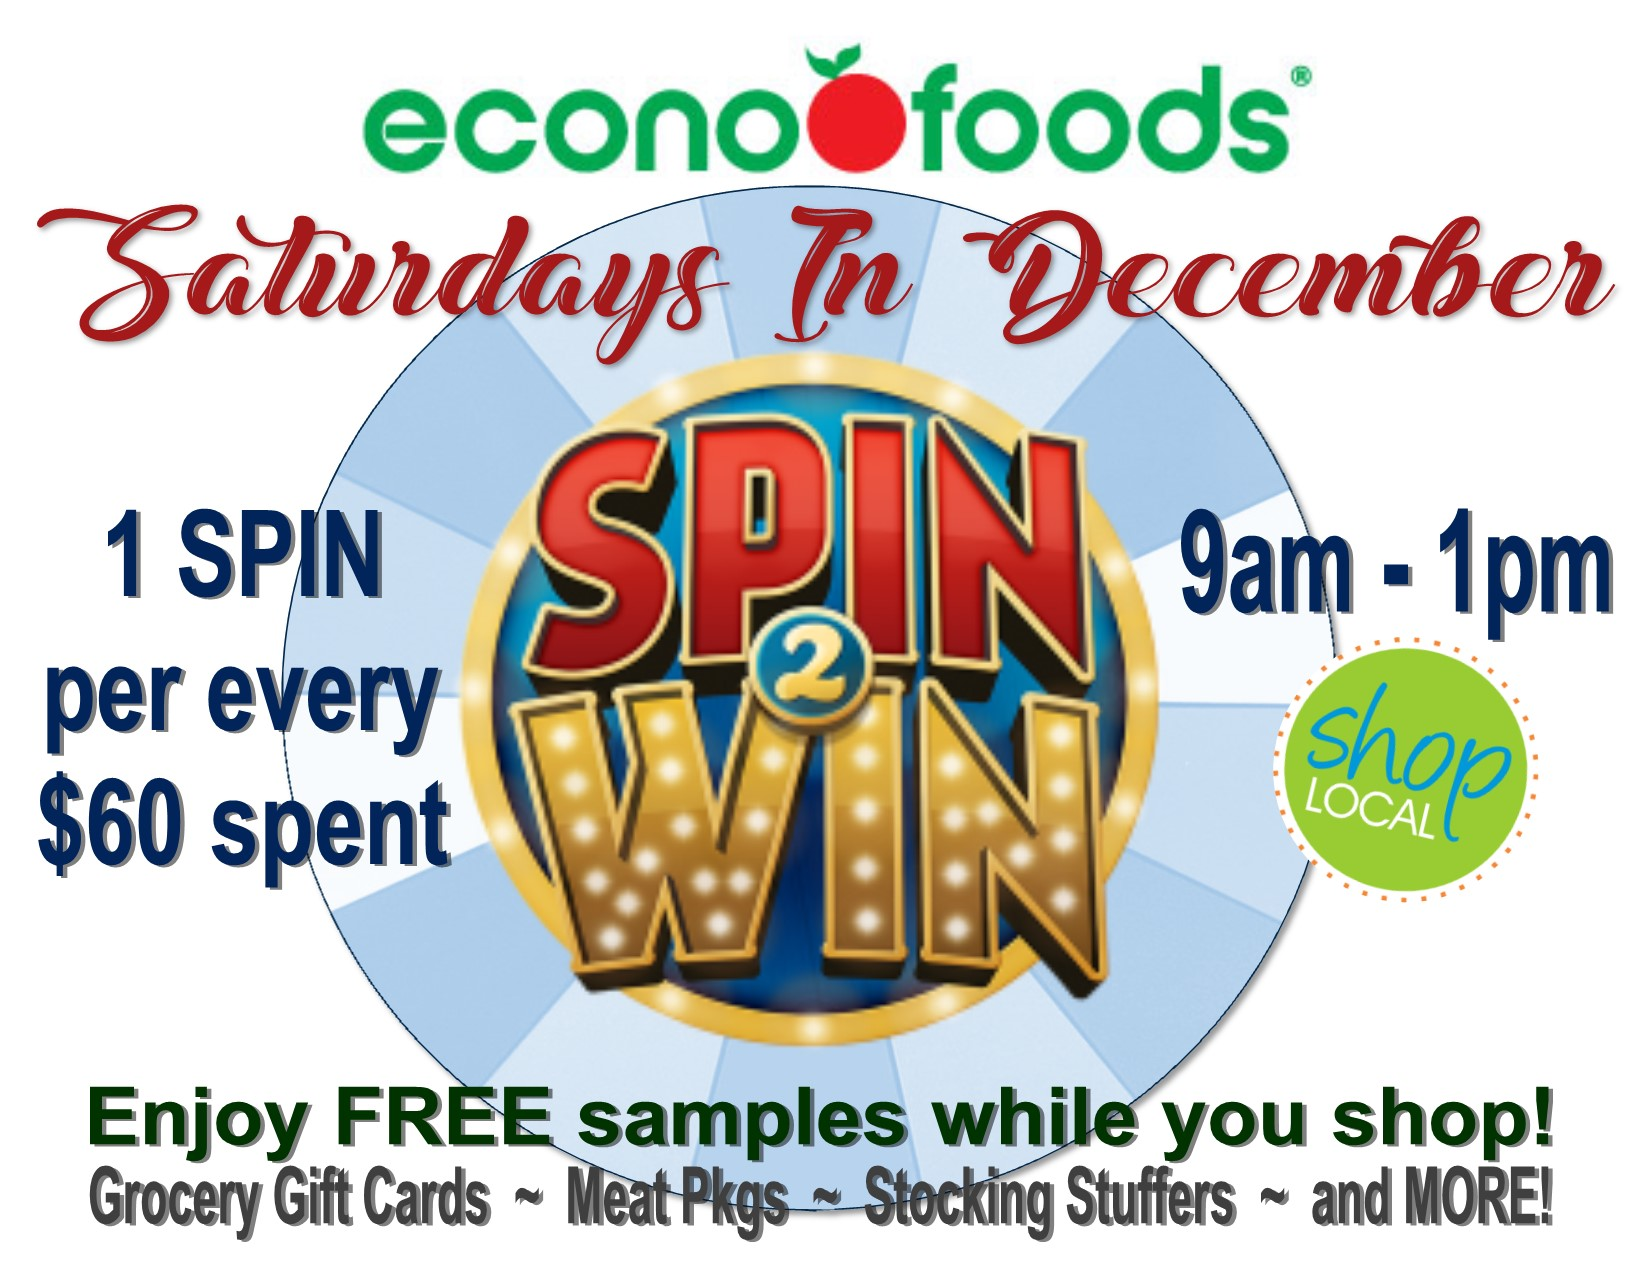 # 1 - Spin 2 Win! - Beginning December 1st when you spend $60 or more on groceries at Econofoods in Somerset you can earn great prizes and gifts for the holiday season!!($$)